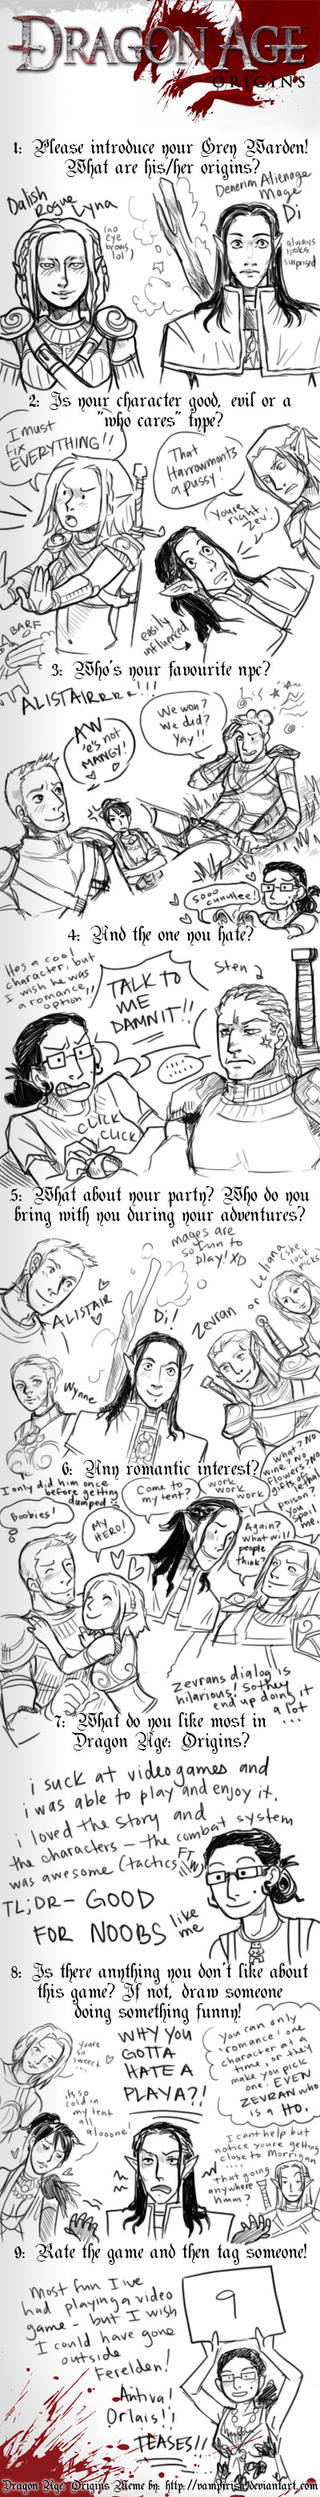 Dragon Age Meme by DeannaEchanique